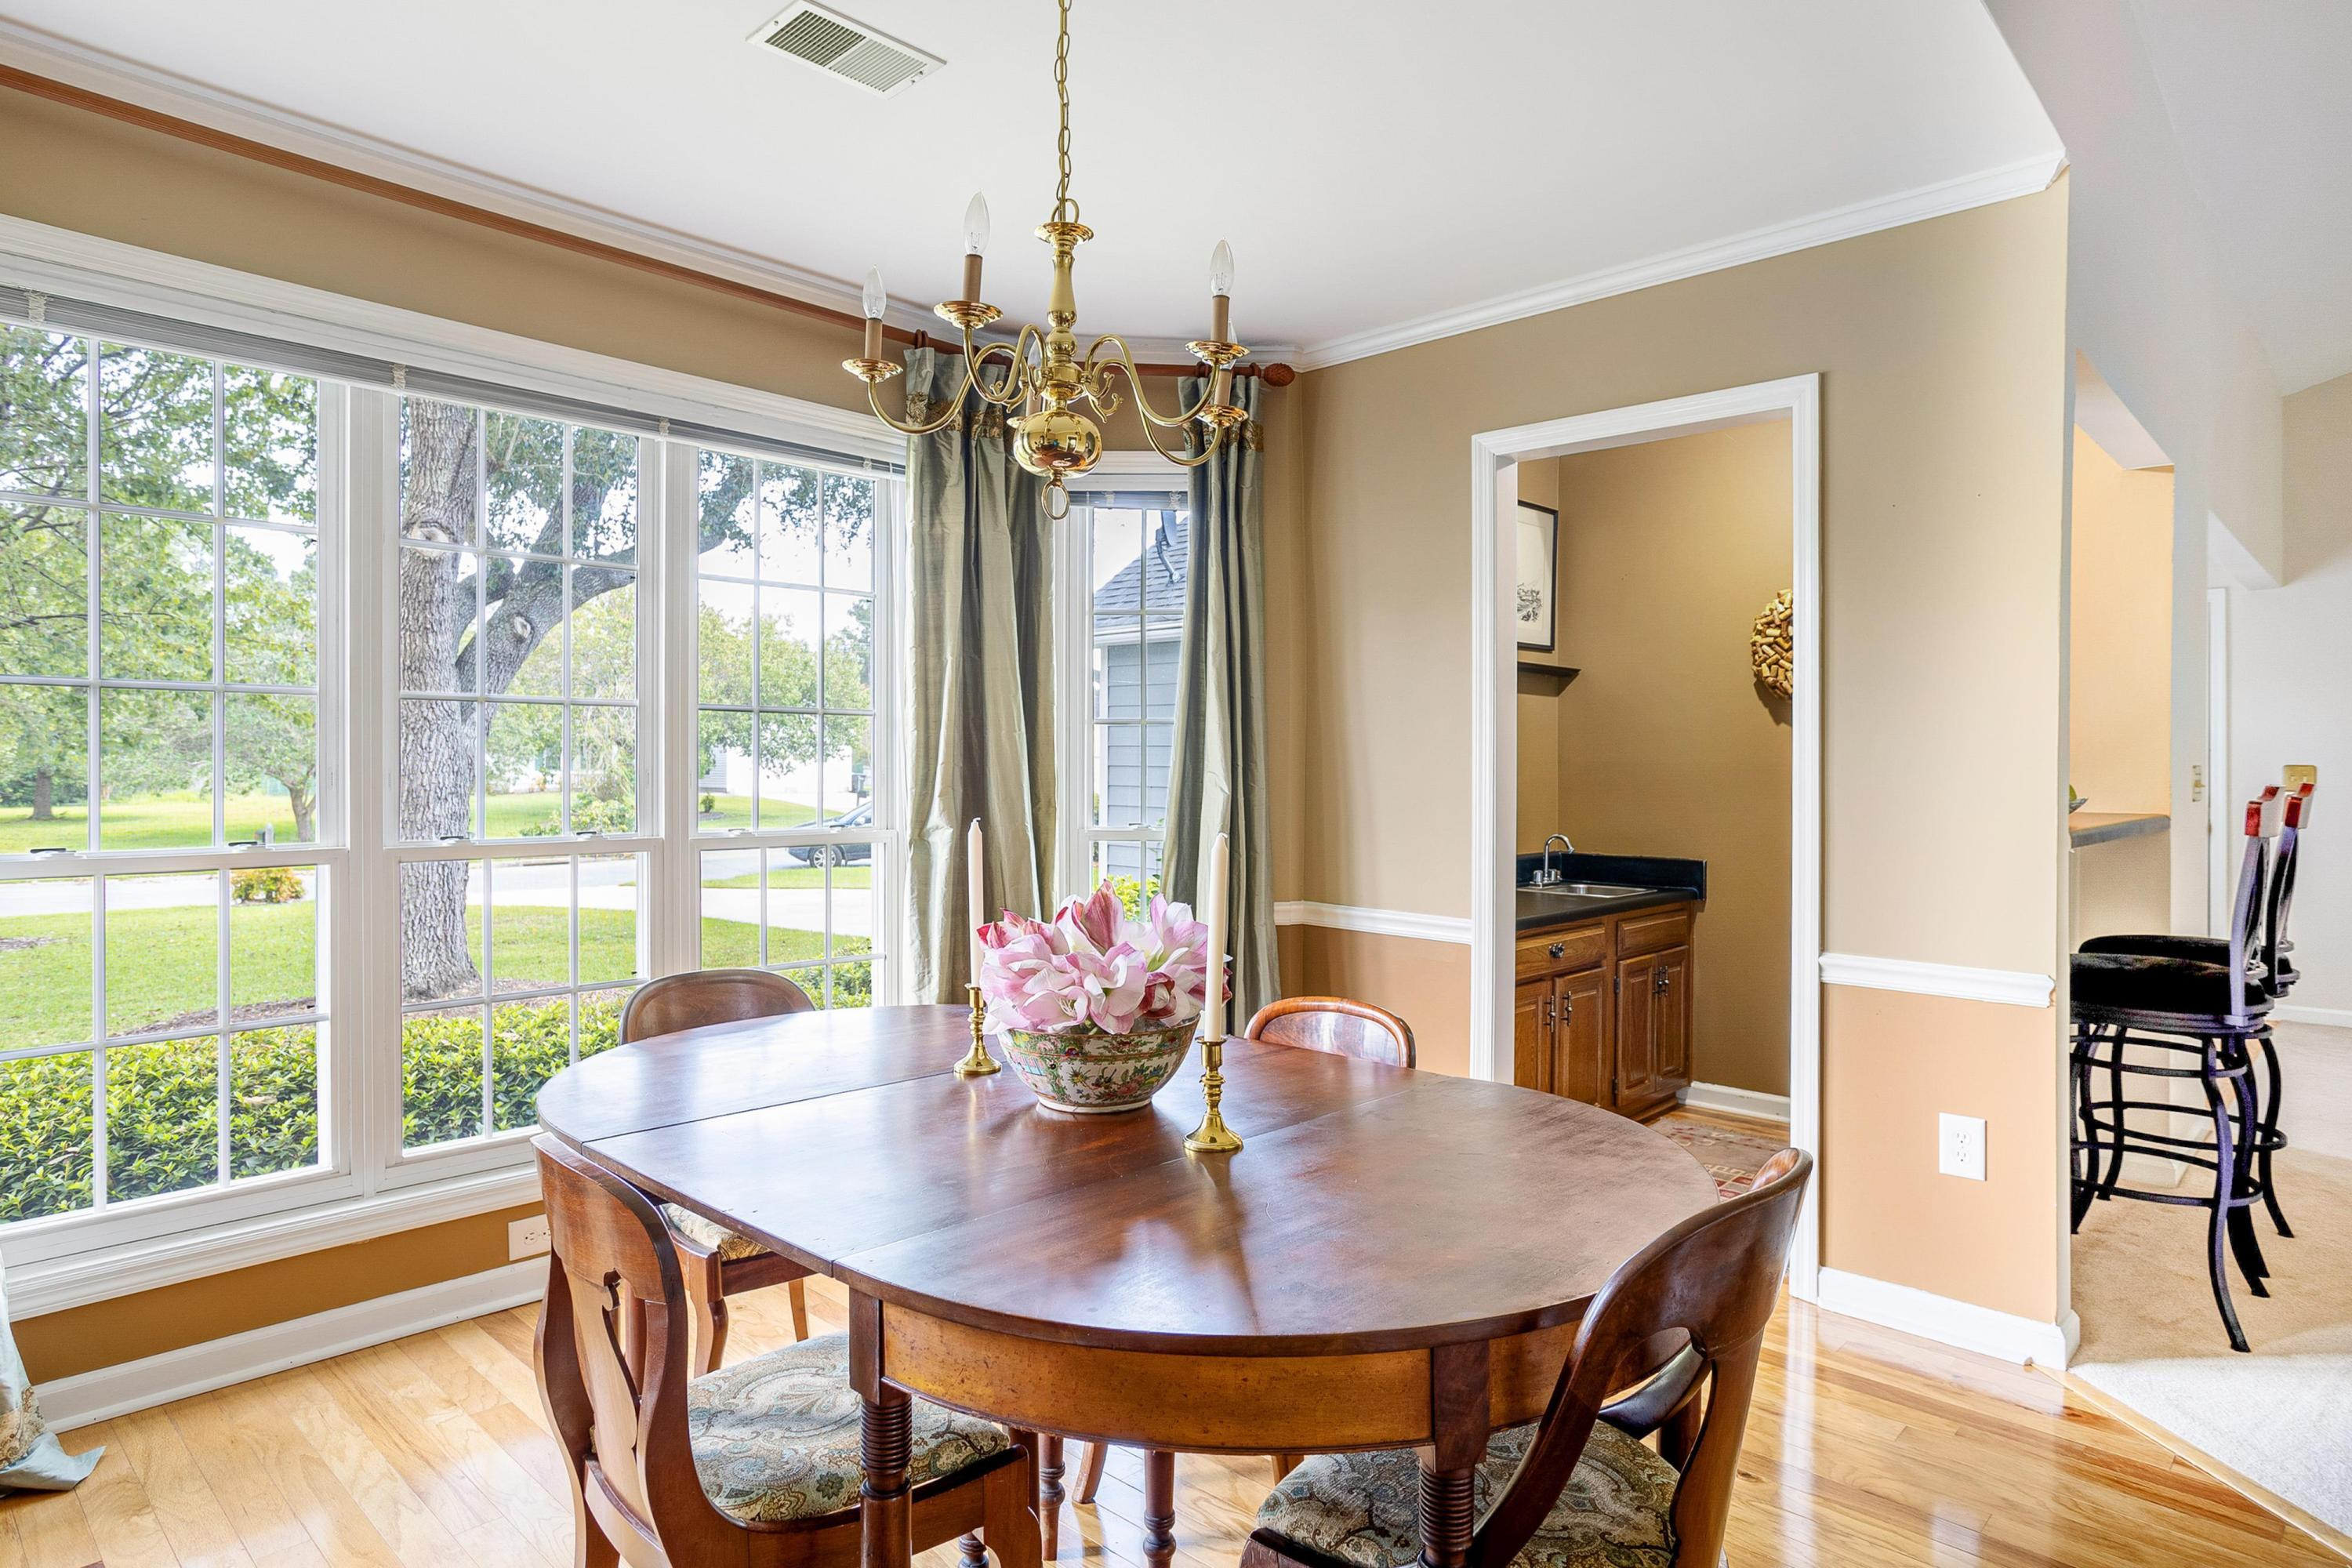 Coopers Pointe Homes For Sale - 750 Lookout Pointe, Mount Pleasant, SC - 6